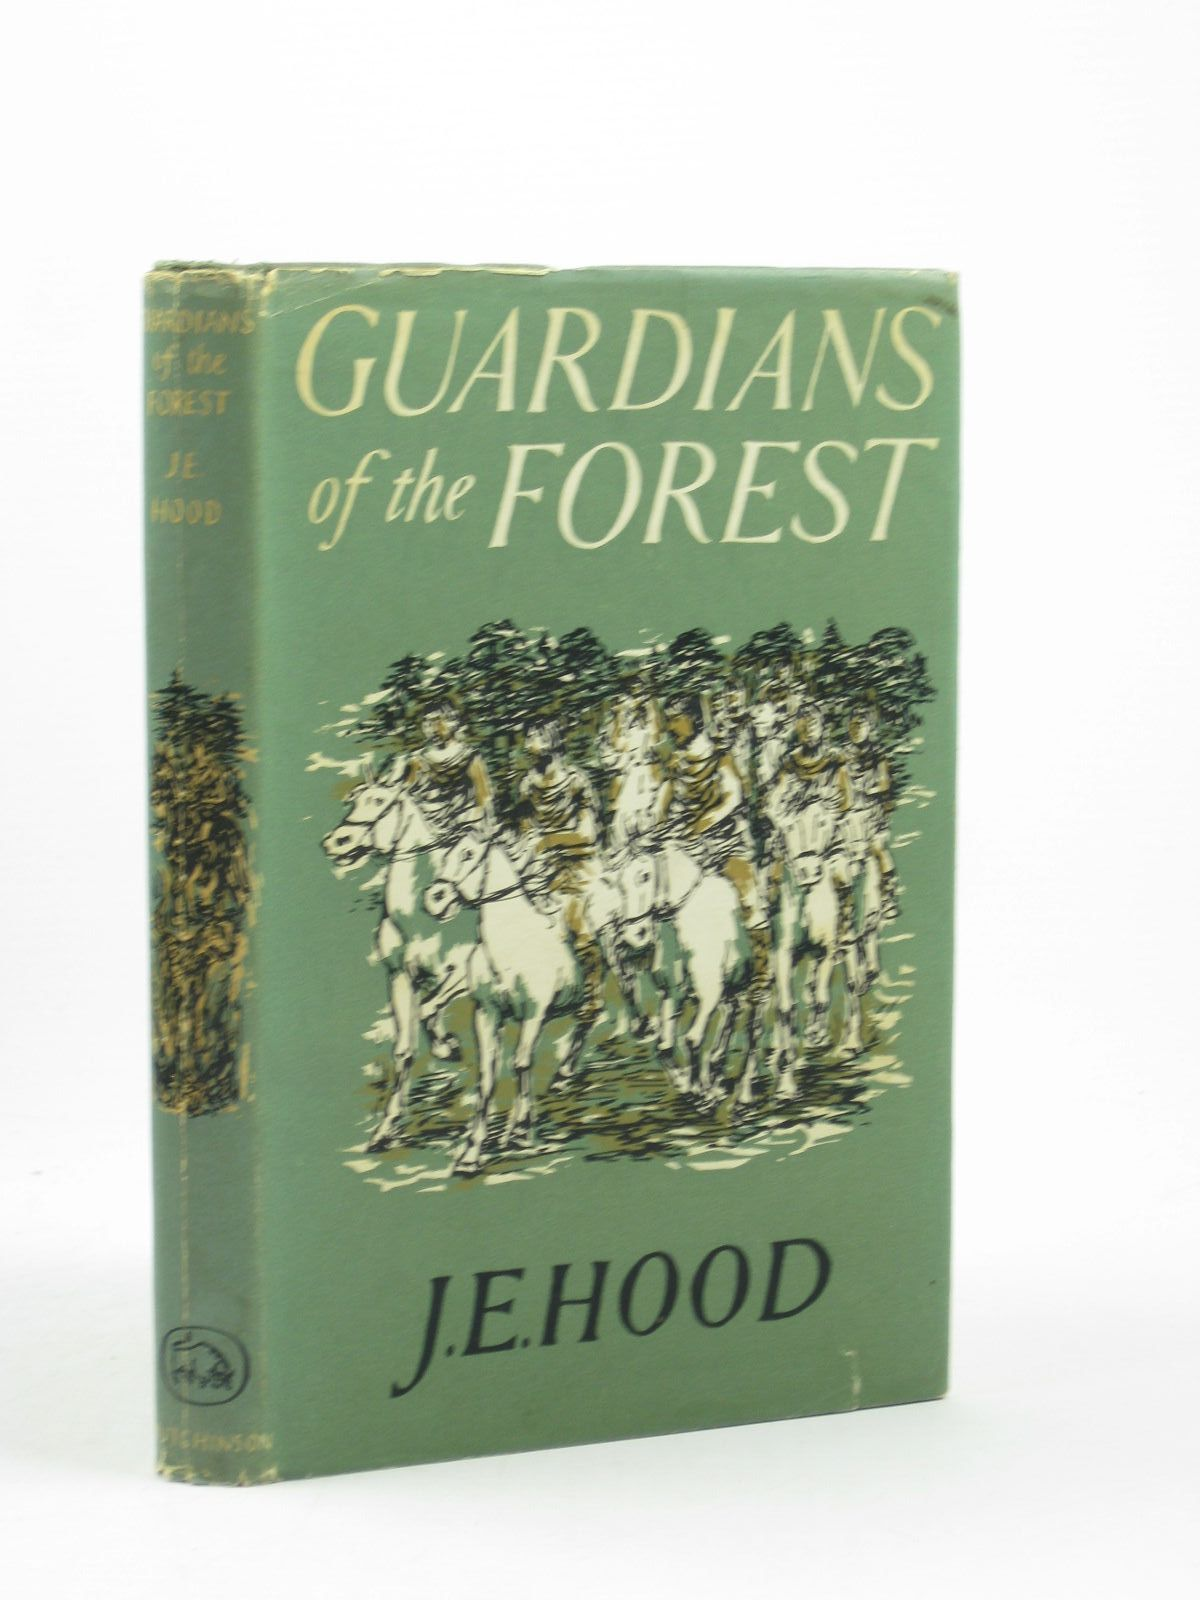 Photo of GUARDIANS OF THE FOREST. written by Hood, J.E. published by Hutchinson of London (STOCK CODE: 1402568)  for sale by Stella & Rose's Books